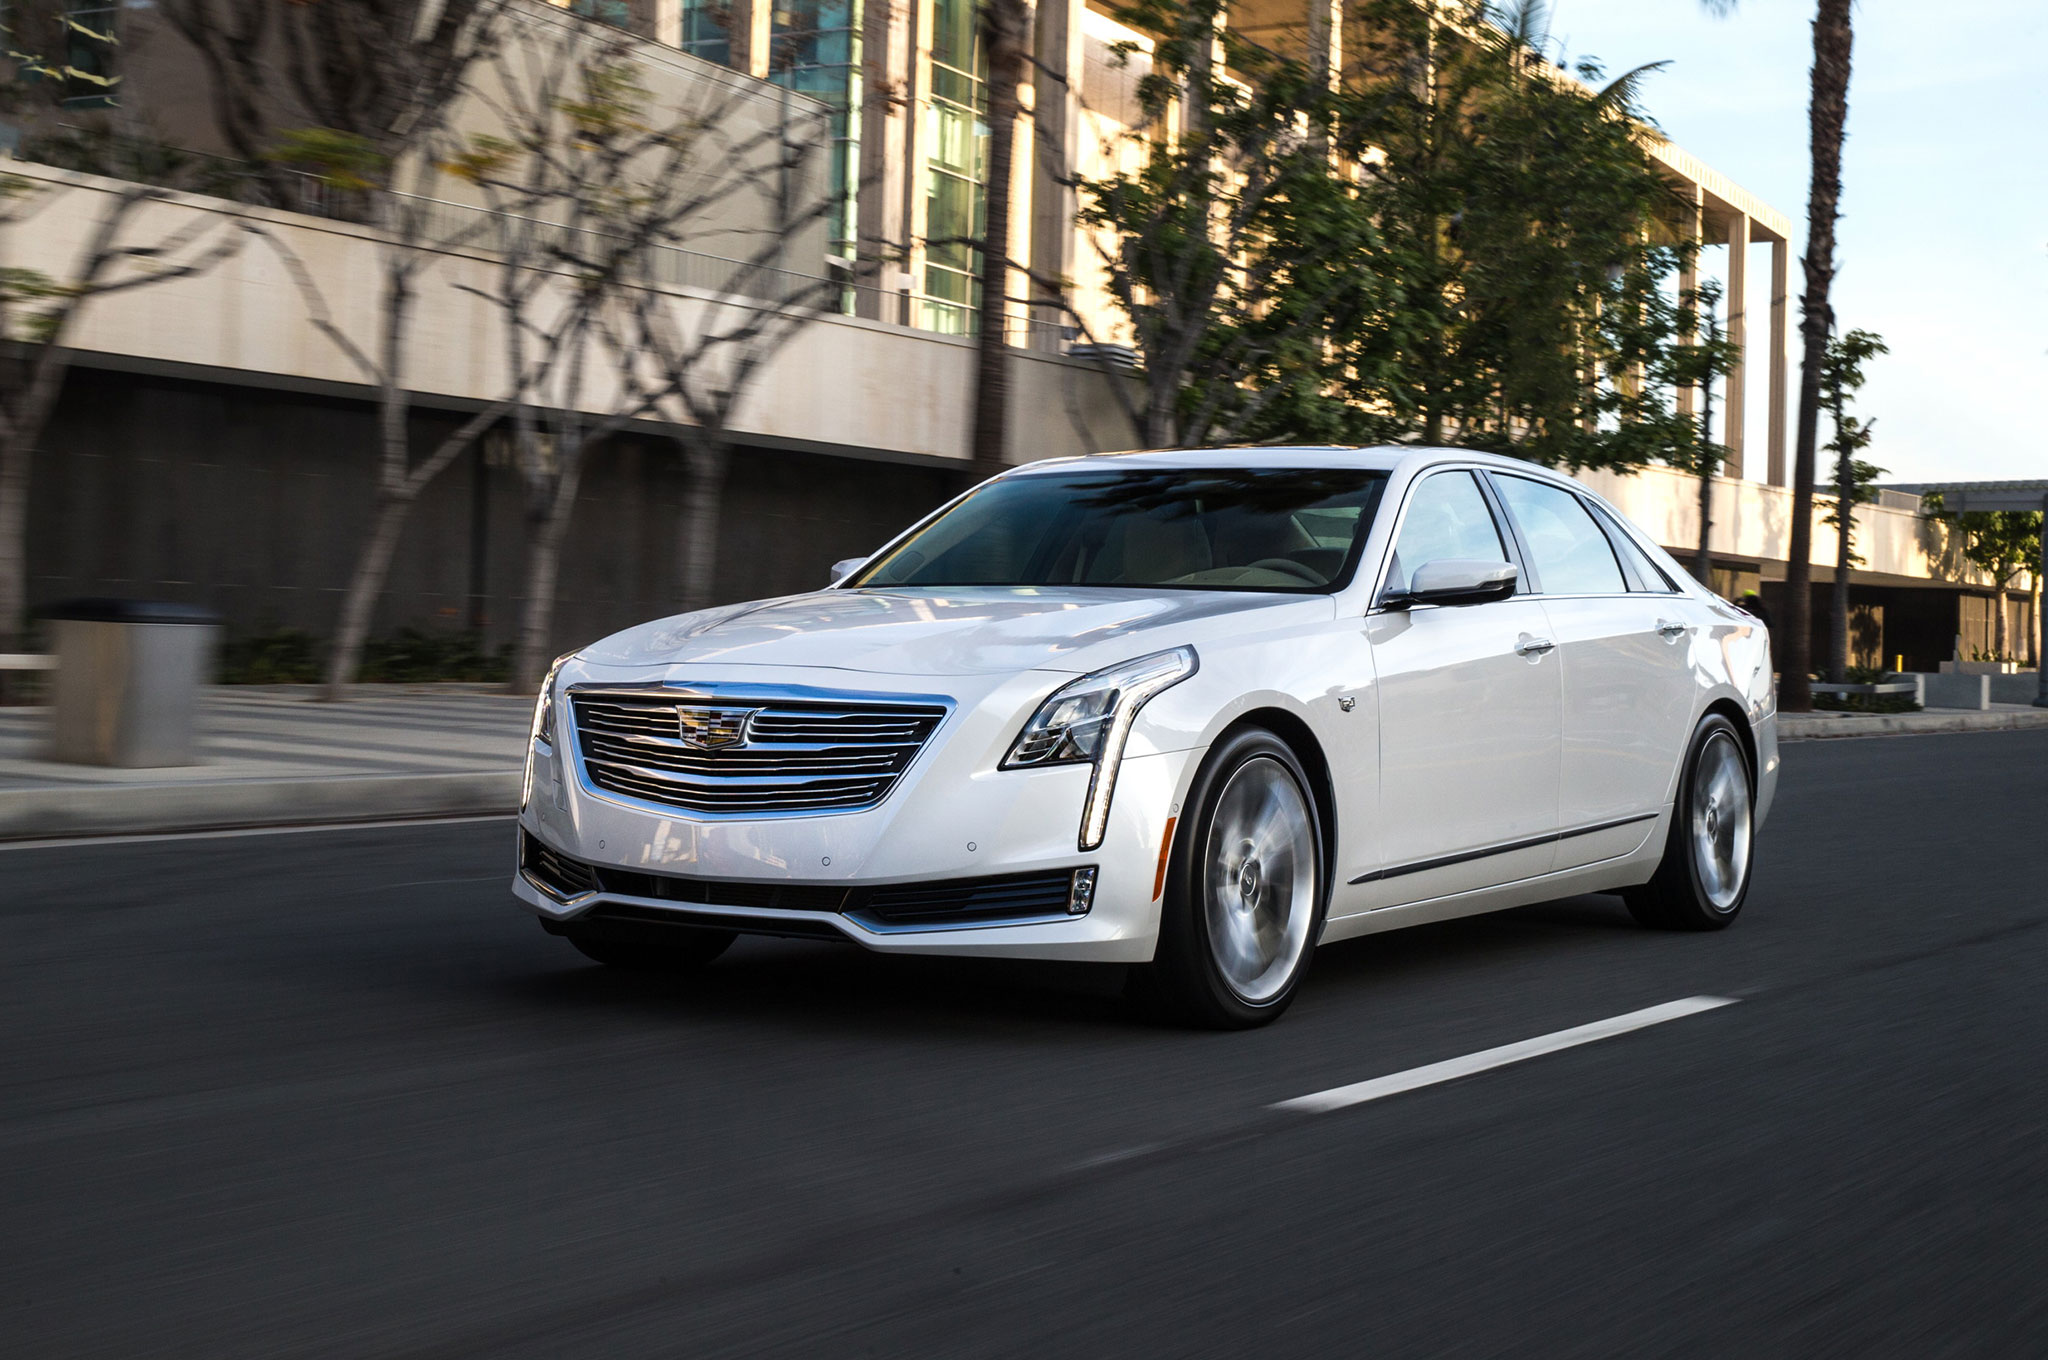 motors fwd srx at used detail cadillac luxury haims collection